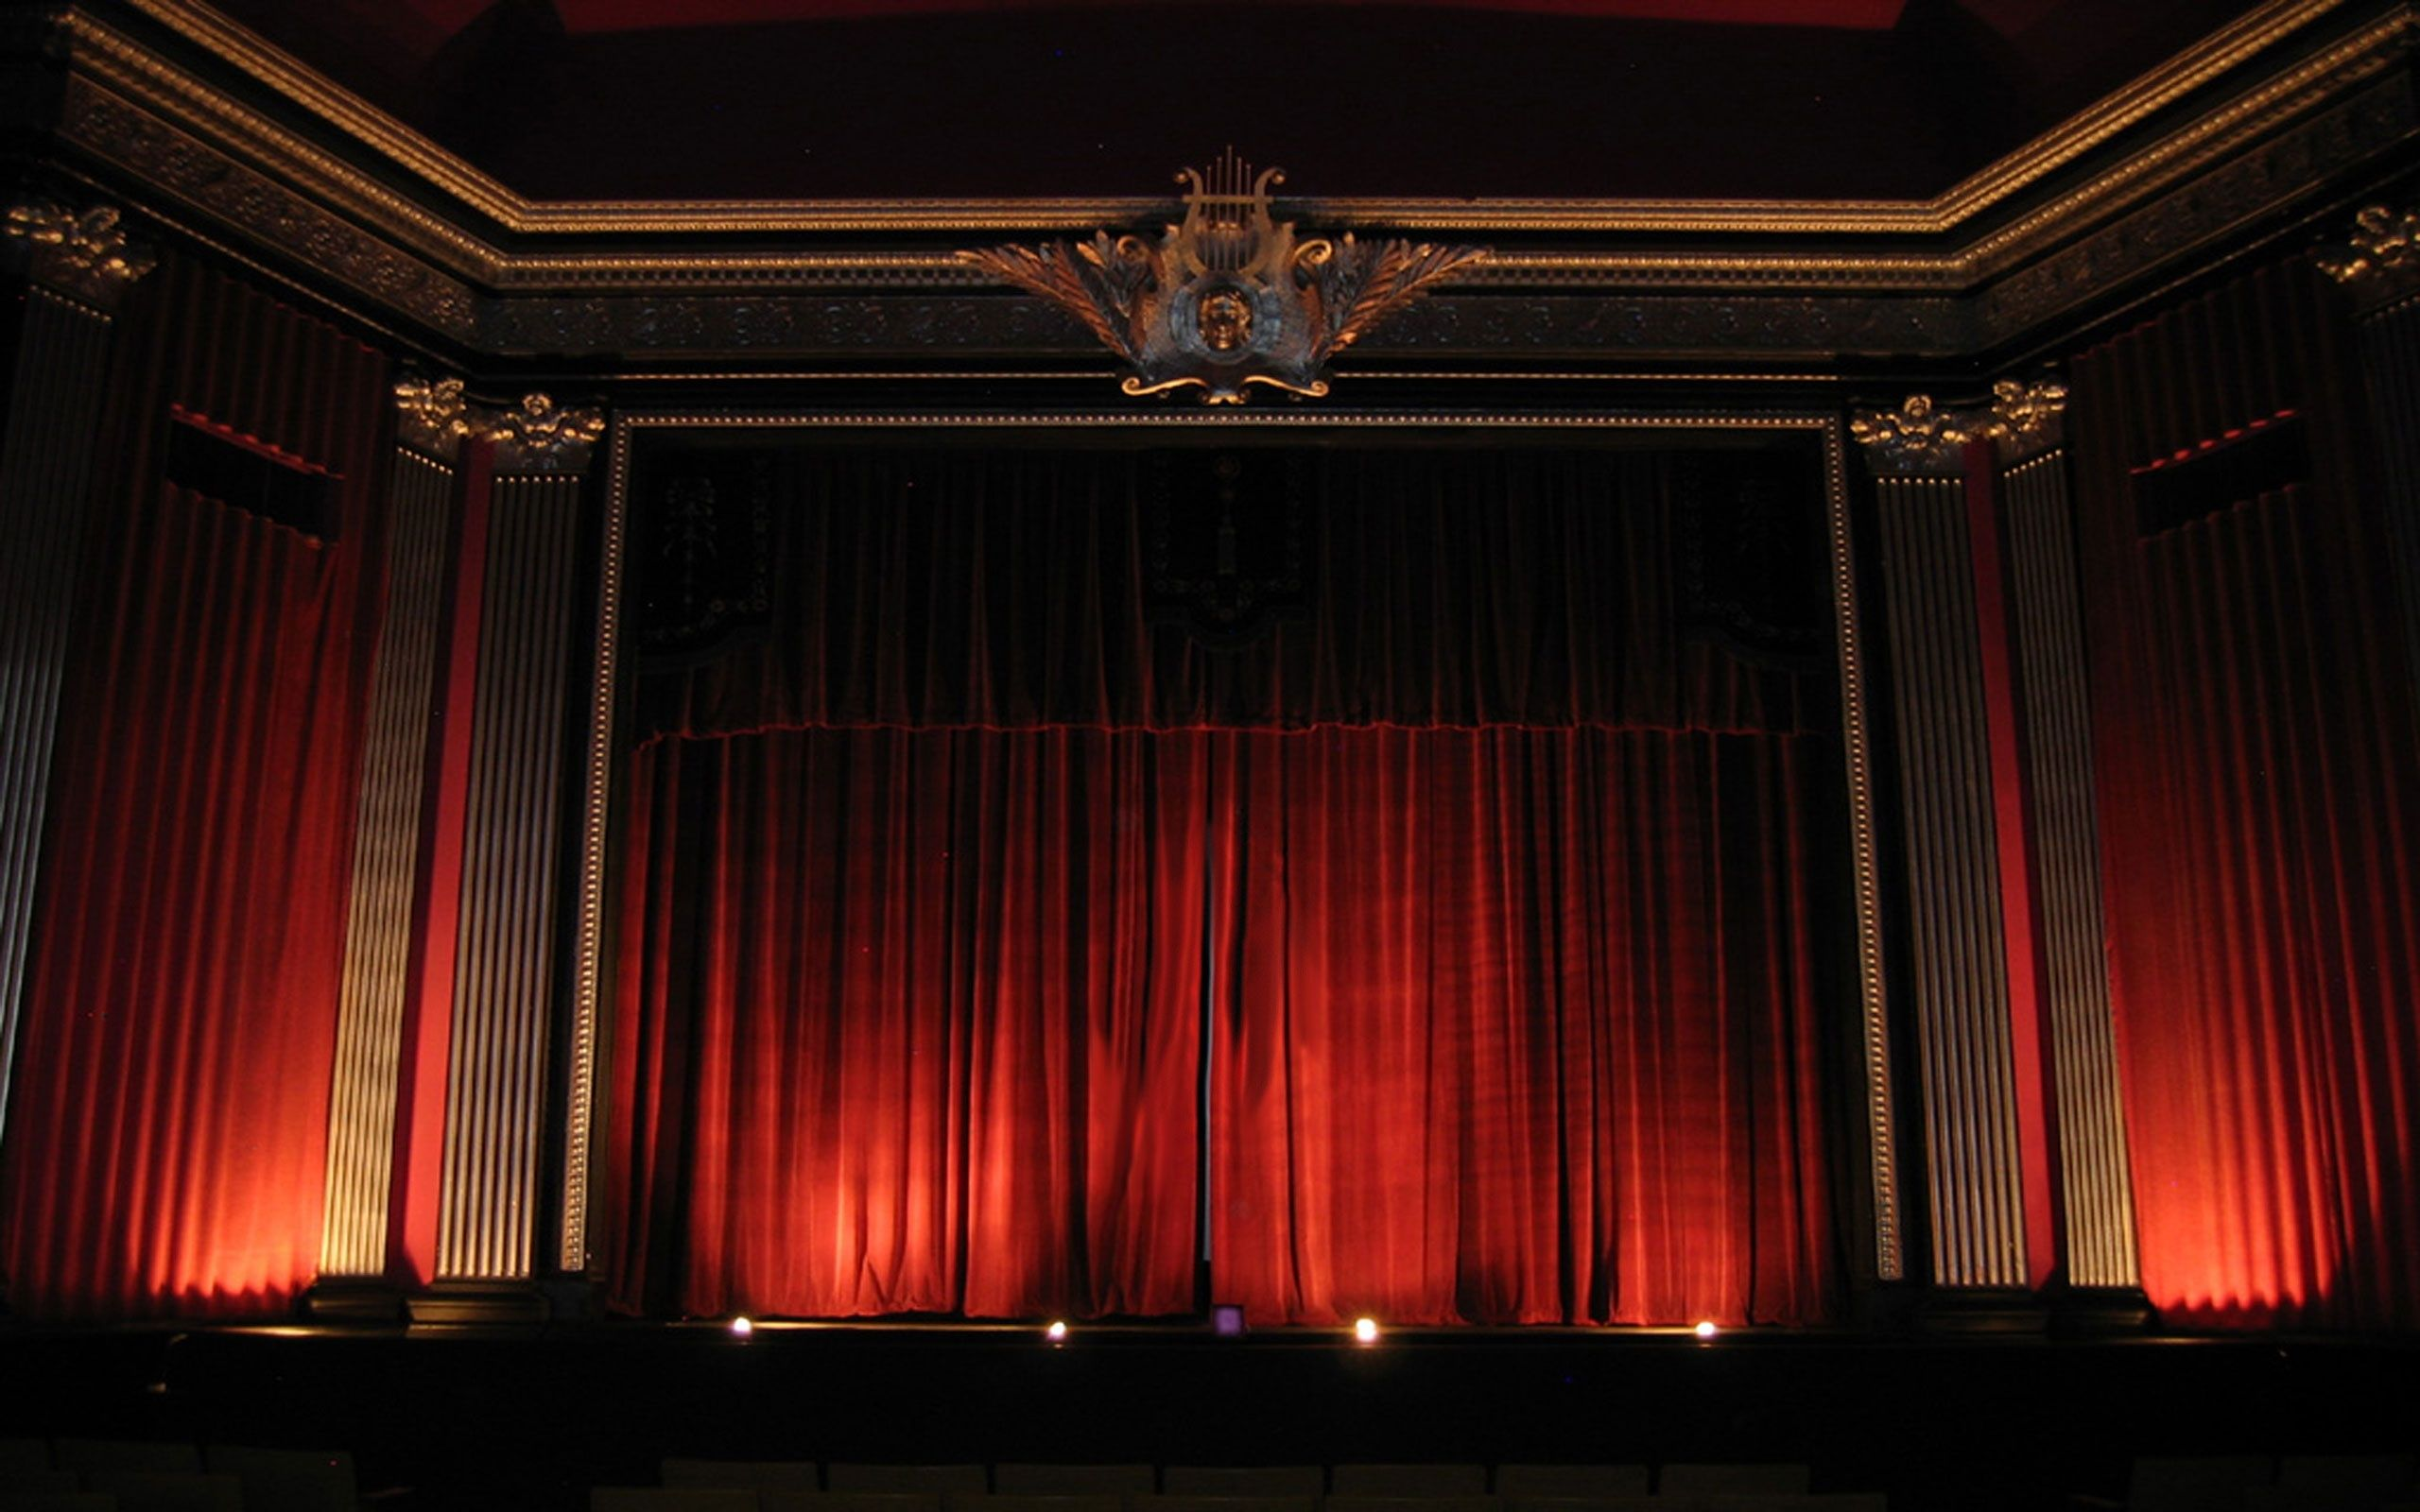 theater curtains and molding -without the ornate capitals | Theater ... for Real Theatre Curtains  55dqh